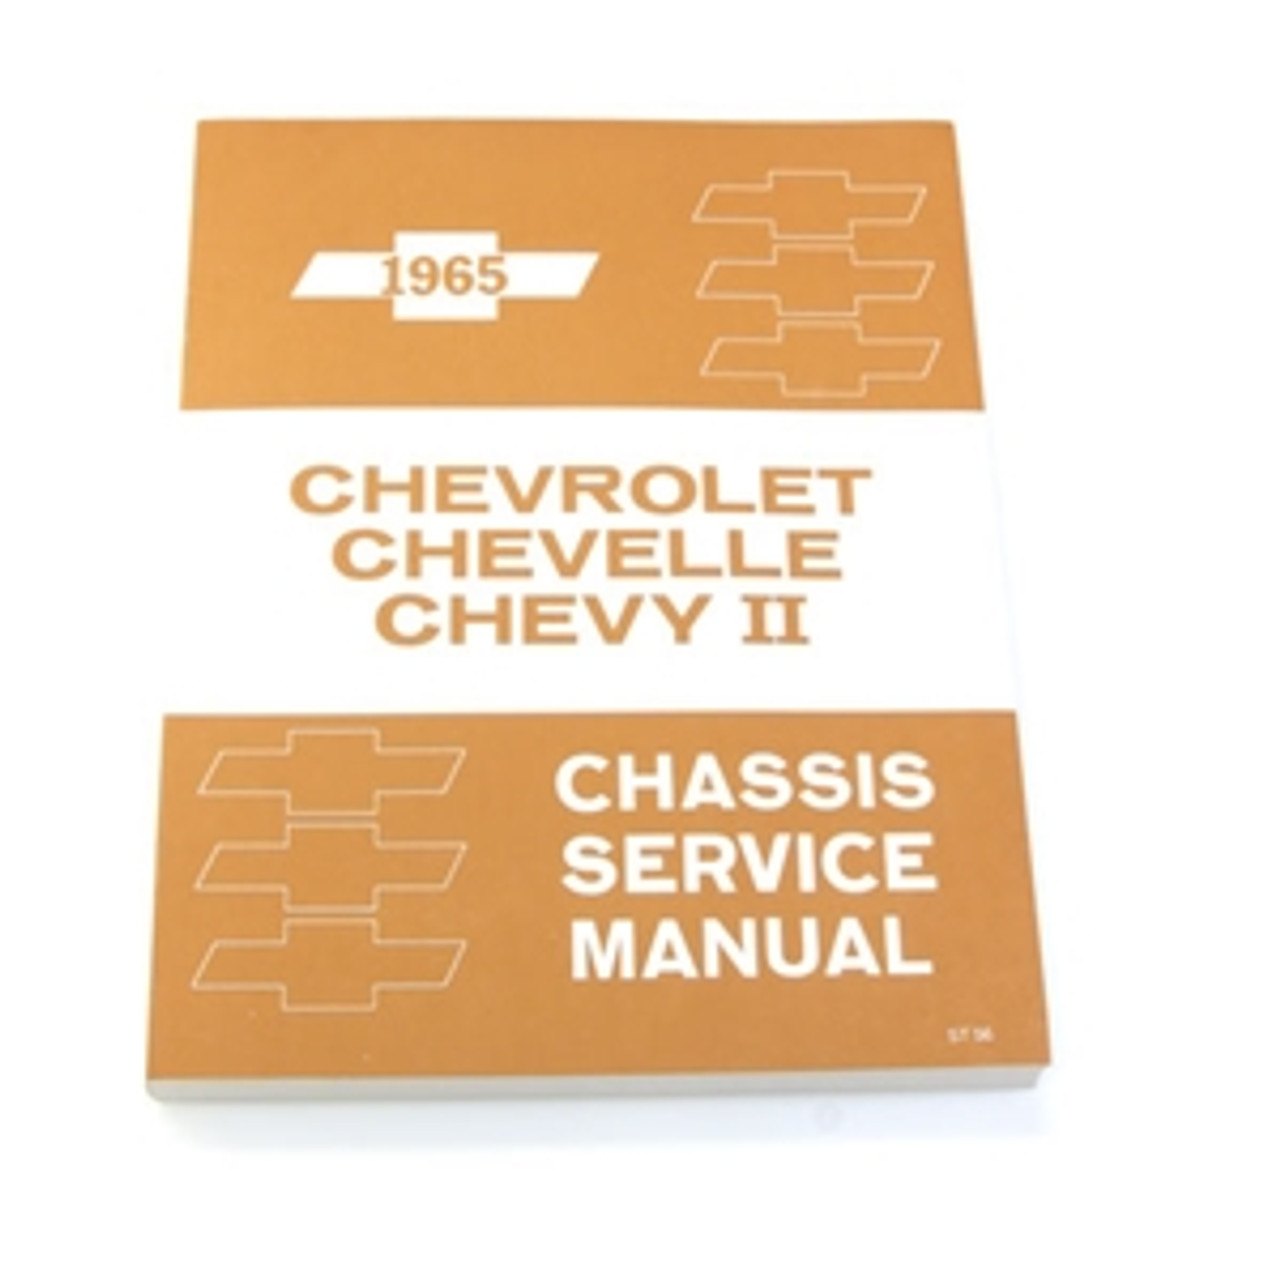 1965 Full Size Chevy, Chevelle, Chevy II Service Manual